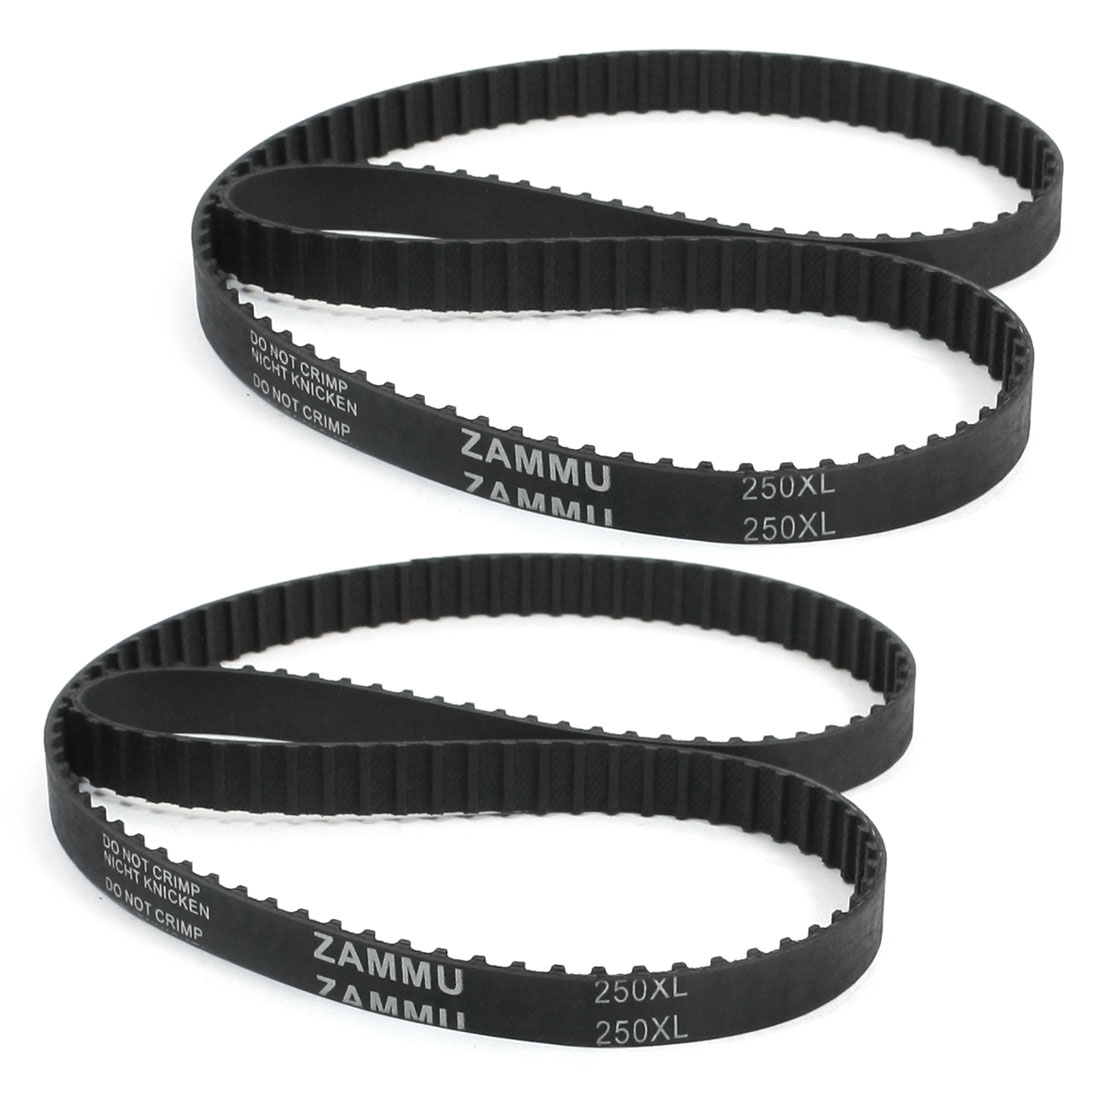 "250XL 25"" Girth 5.08mm Pitch 125-Teeth Black Rubber Industrial Synchro Machine Synchronous Timing Belt 2Pcs"